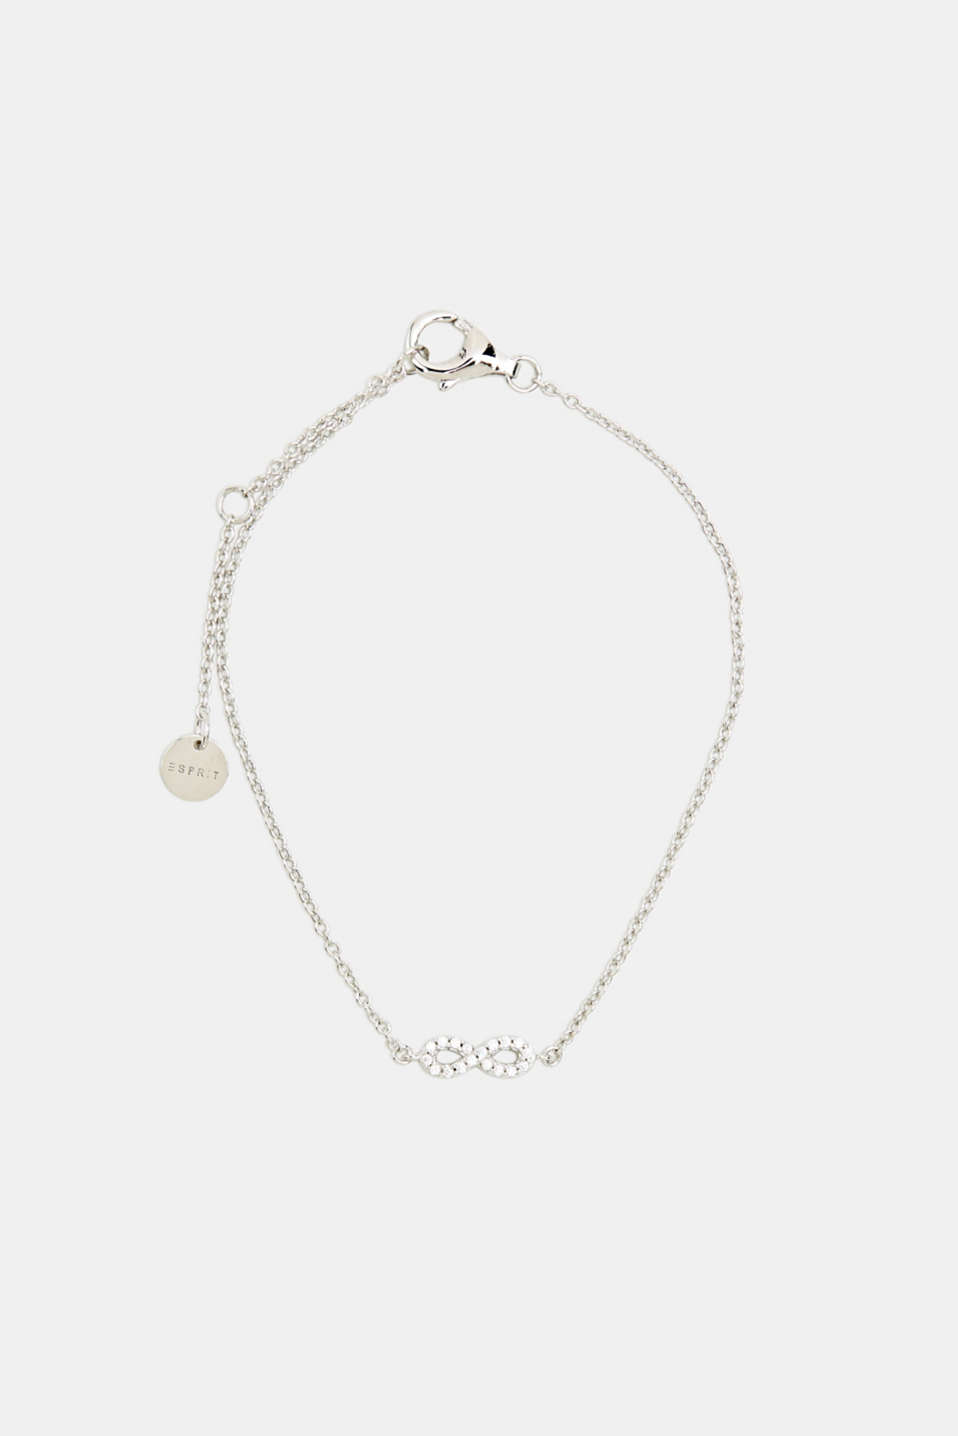 Bracelet with zirconia charm, sterling silver, LCSILVER, detail image number 0